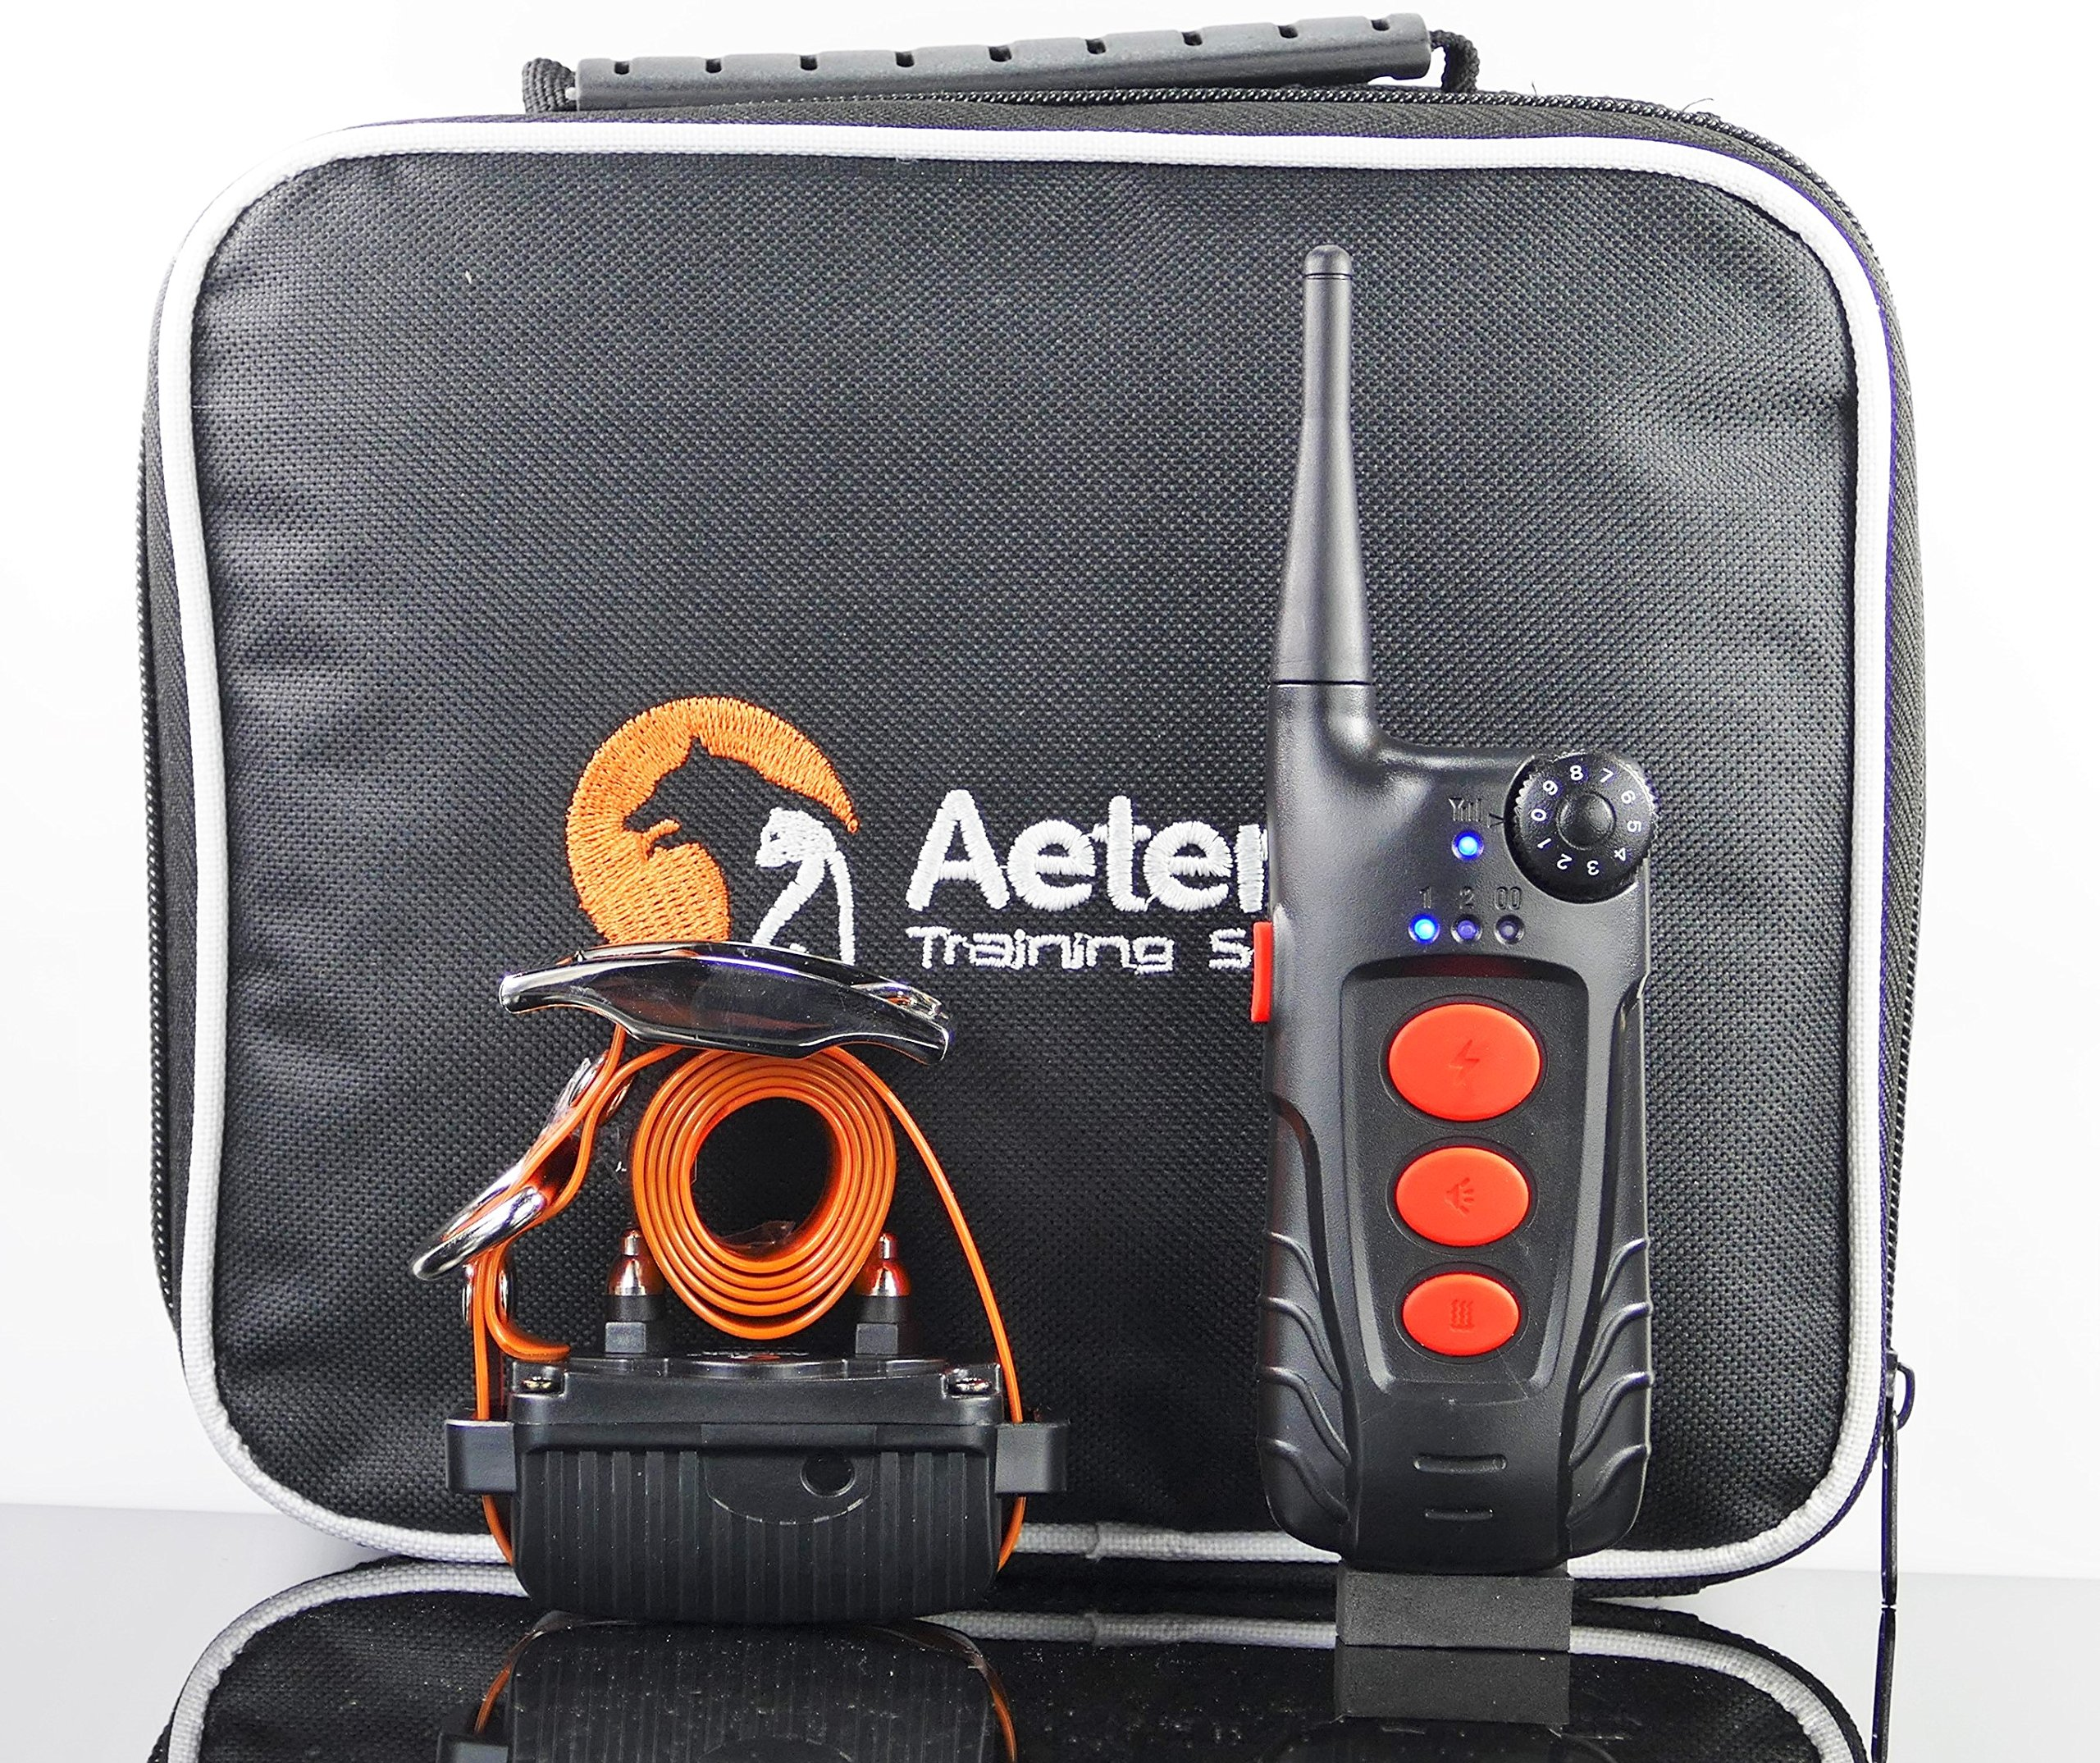 Aetertek 600 YARD REMOTE DOG TRAINER WITH WATERPROOF RECHARGEABLE DOG TRAINING SHOCK COLLAR TRAINER WITH AUTO ANTI-BARK (AT-918C-1 DOG SET) by Aetertek